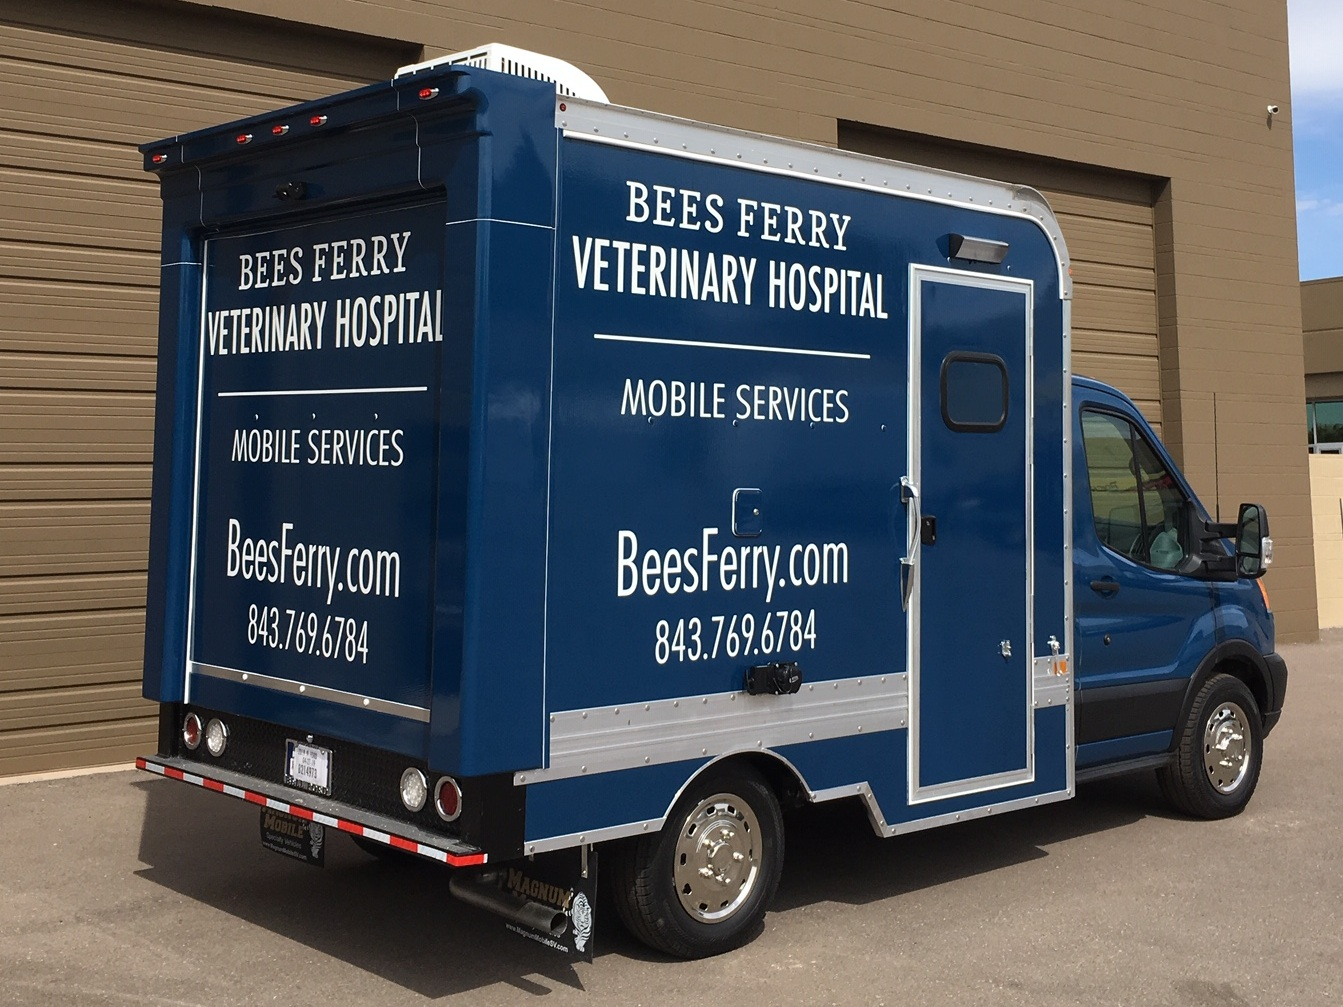 Bees Ferry Veterinary Hospital | Mobile Services | Charleston, SC